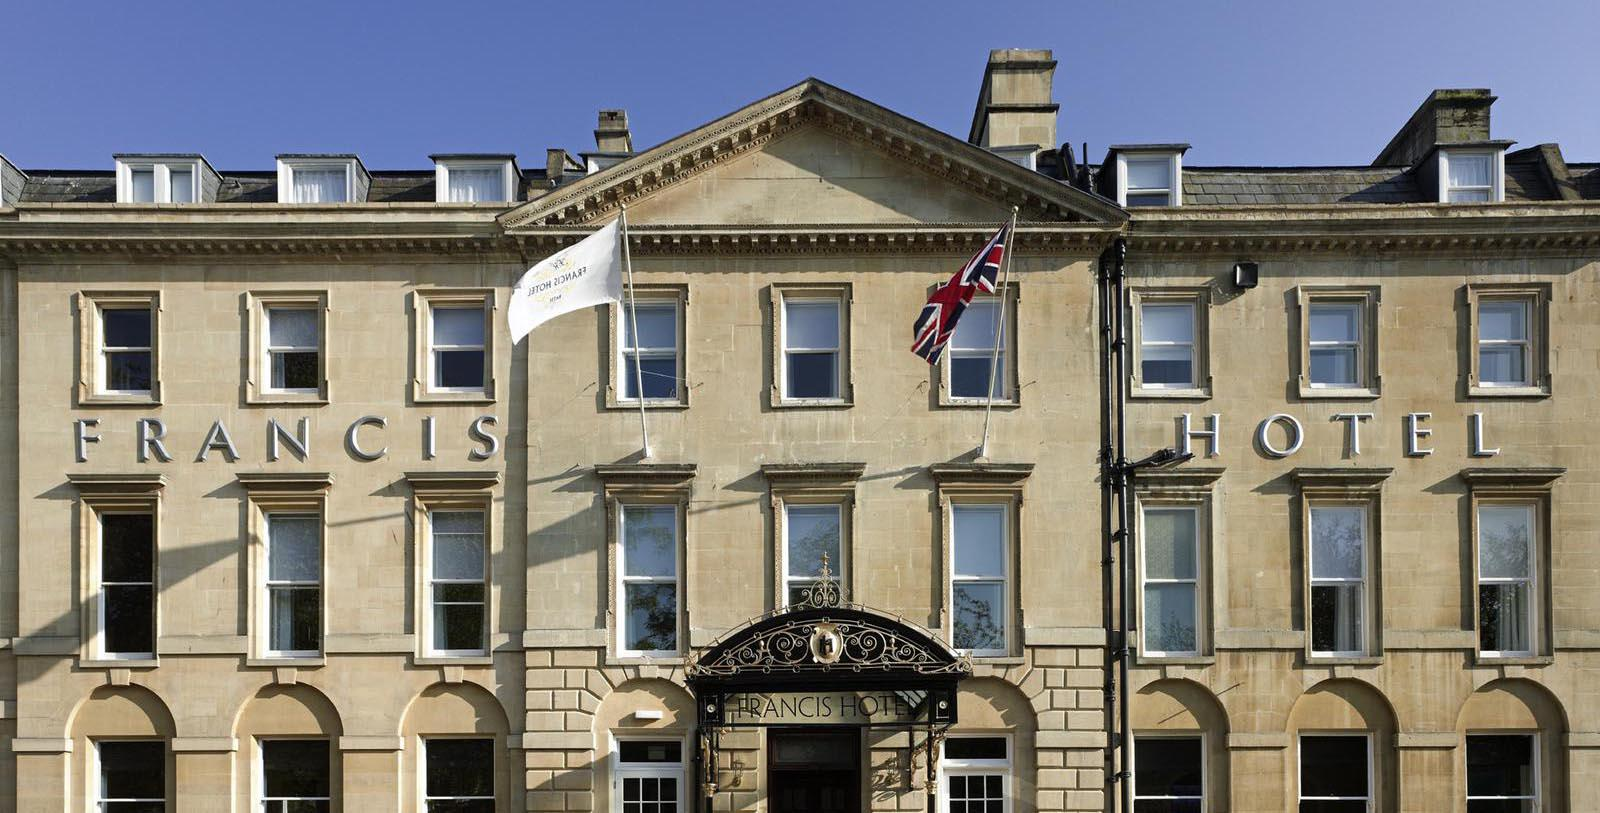 Image of Hotel Exterior Francis Hotel Bath - MGallery by Sofitel, 1736, Member of Historic Hotels Worldwide, in Bath, England, Special Offers, Discounted Rates, Families, Romantic Escape, Honeymoons, Anniversaries, Reunions